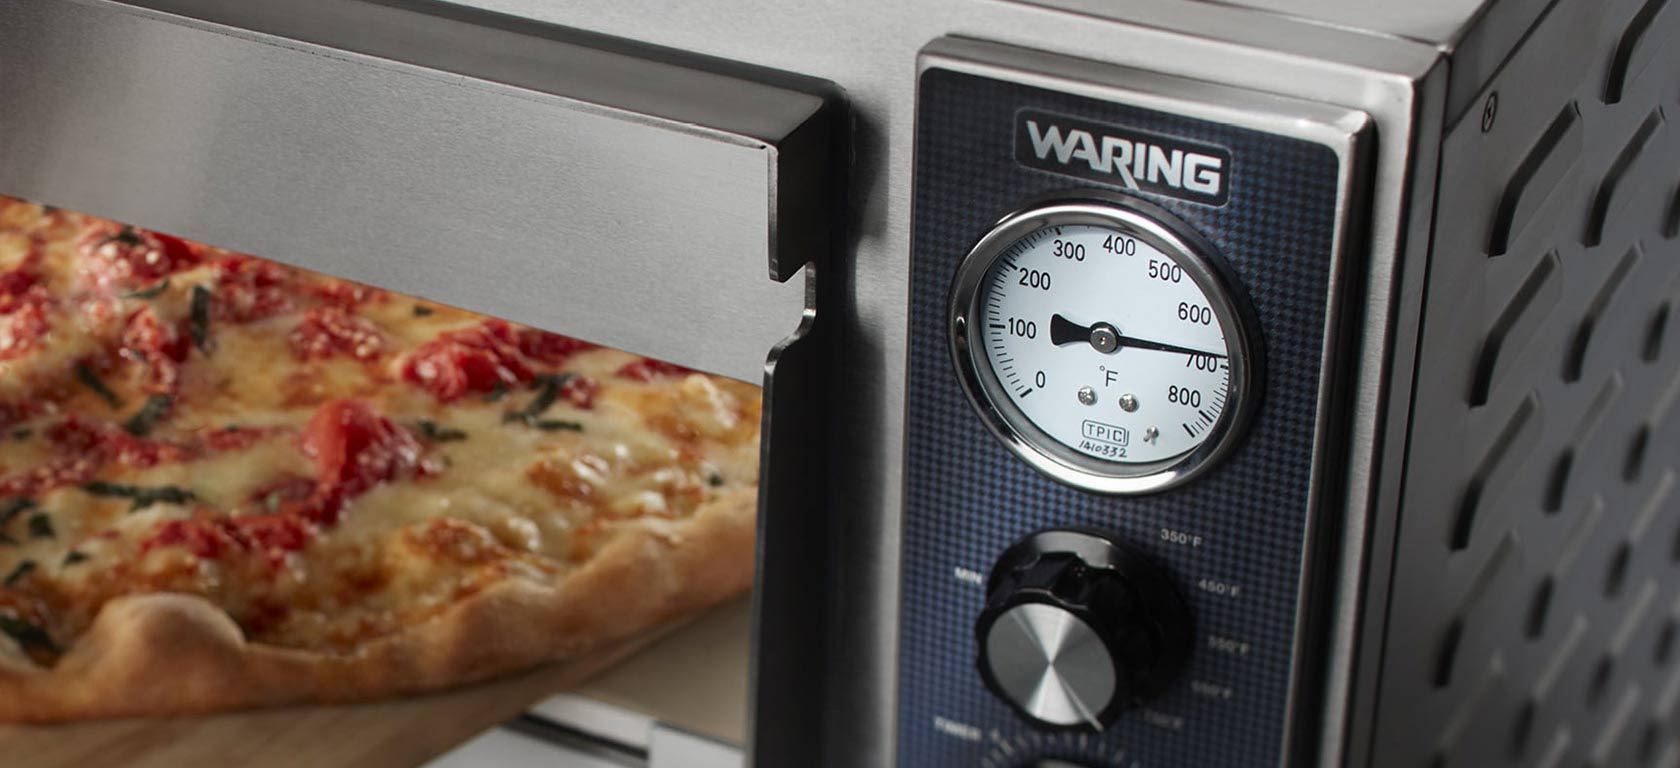 Waring toaster oven with chrome finish warming a flatbread.